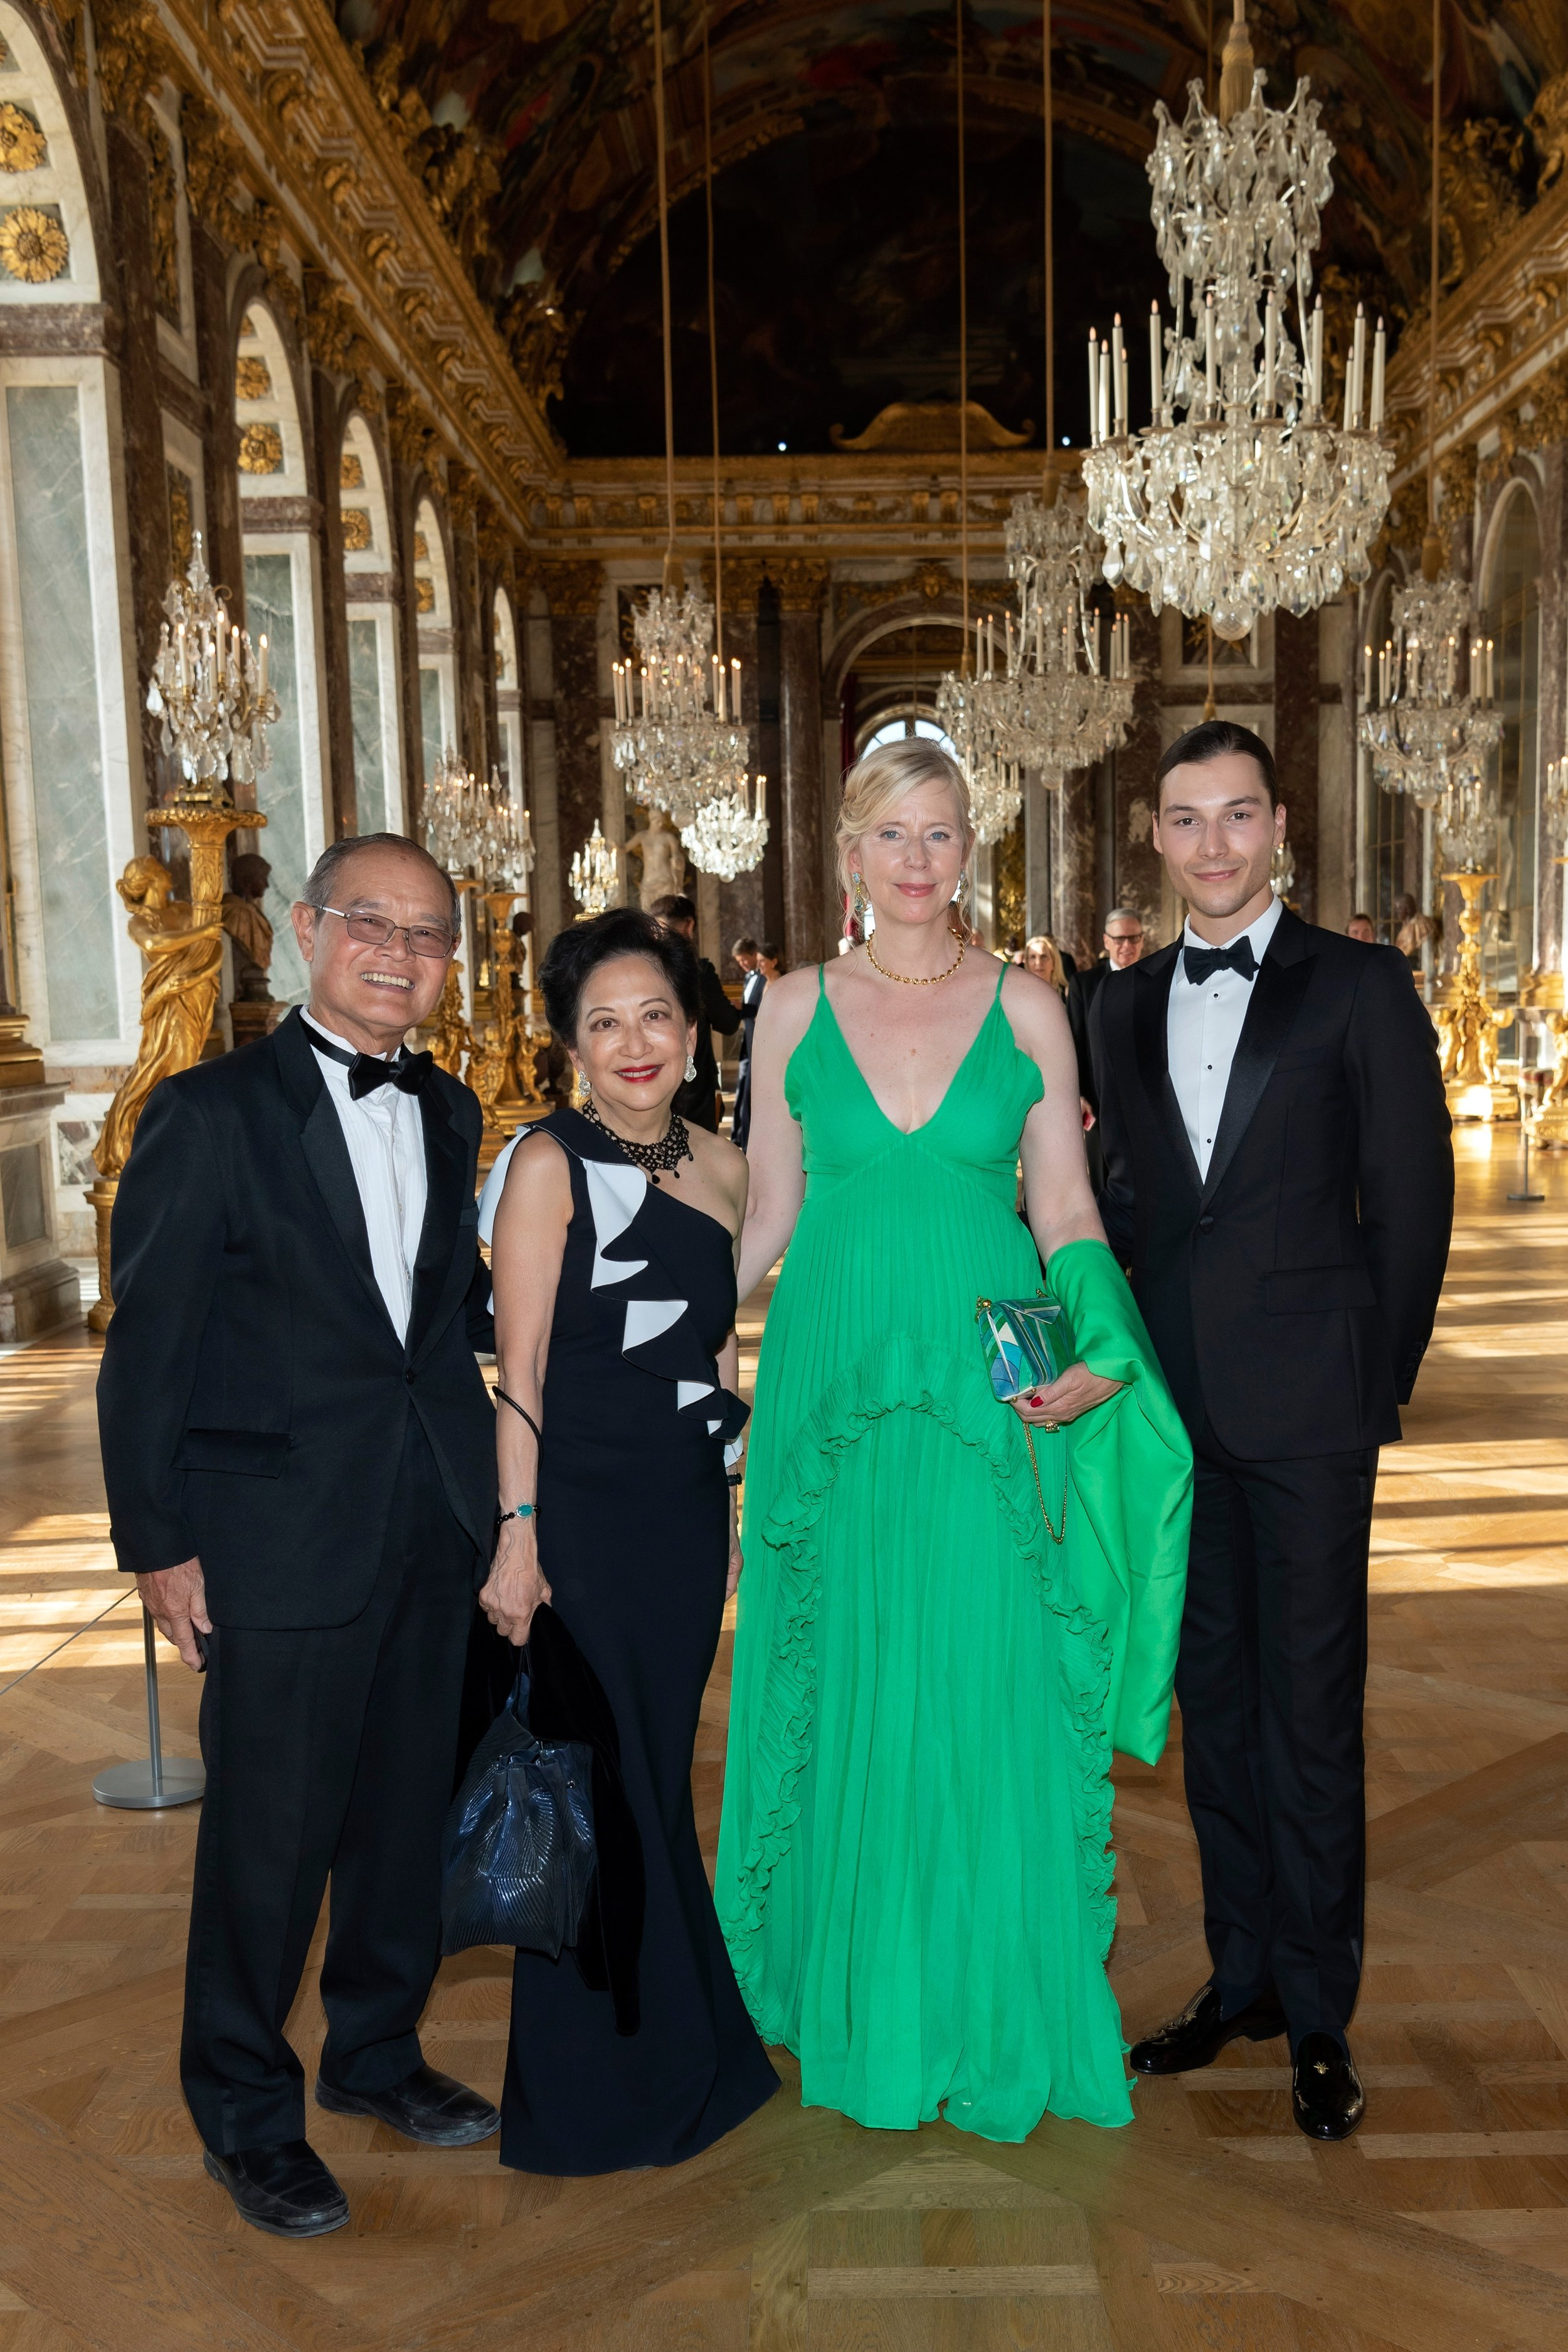 Worldster Lee, Patricia Lee, Countess Dorothea De La Houssaye, Mathieu-Francois Spannagel